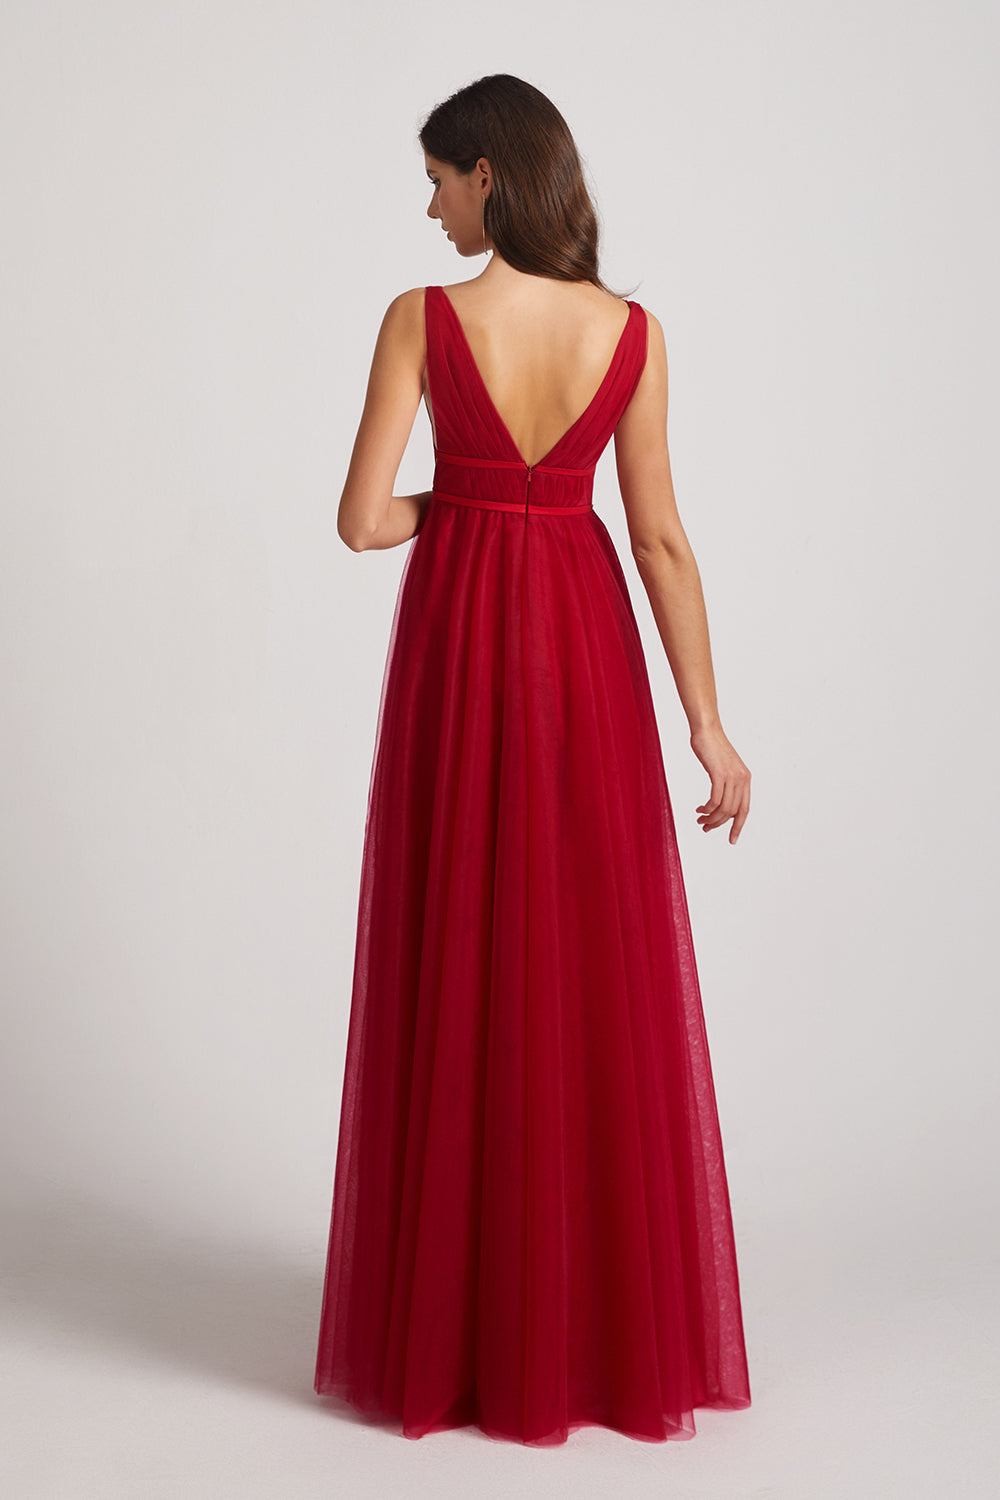 v back tulle bridesmaid dress